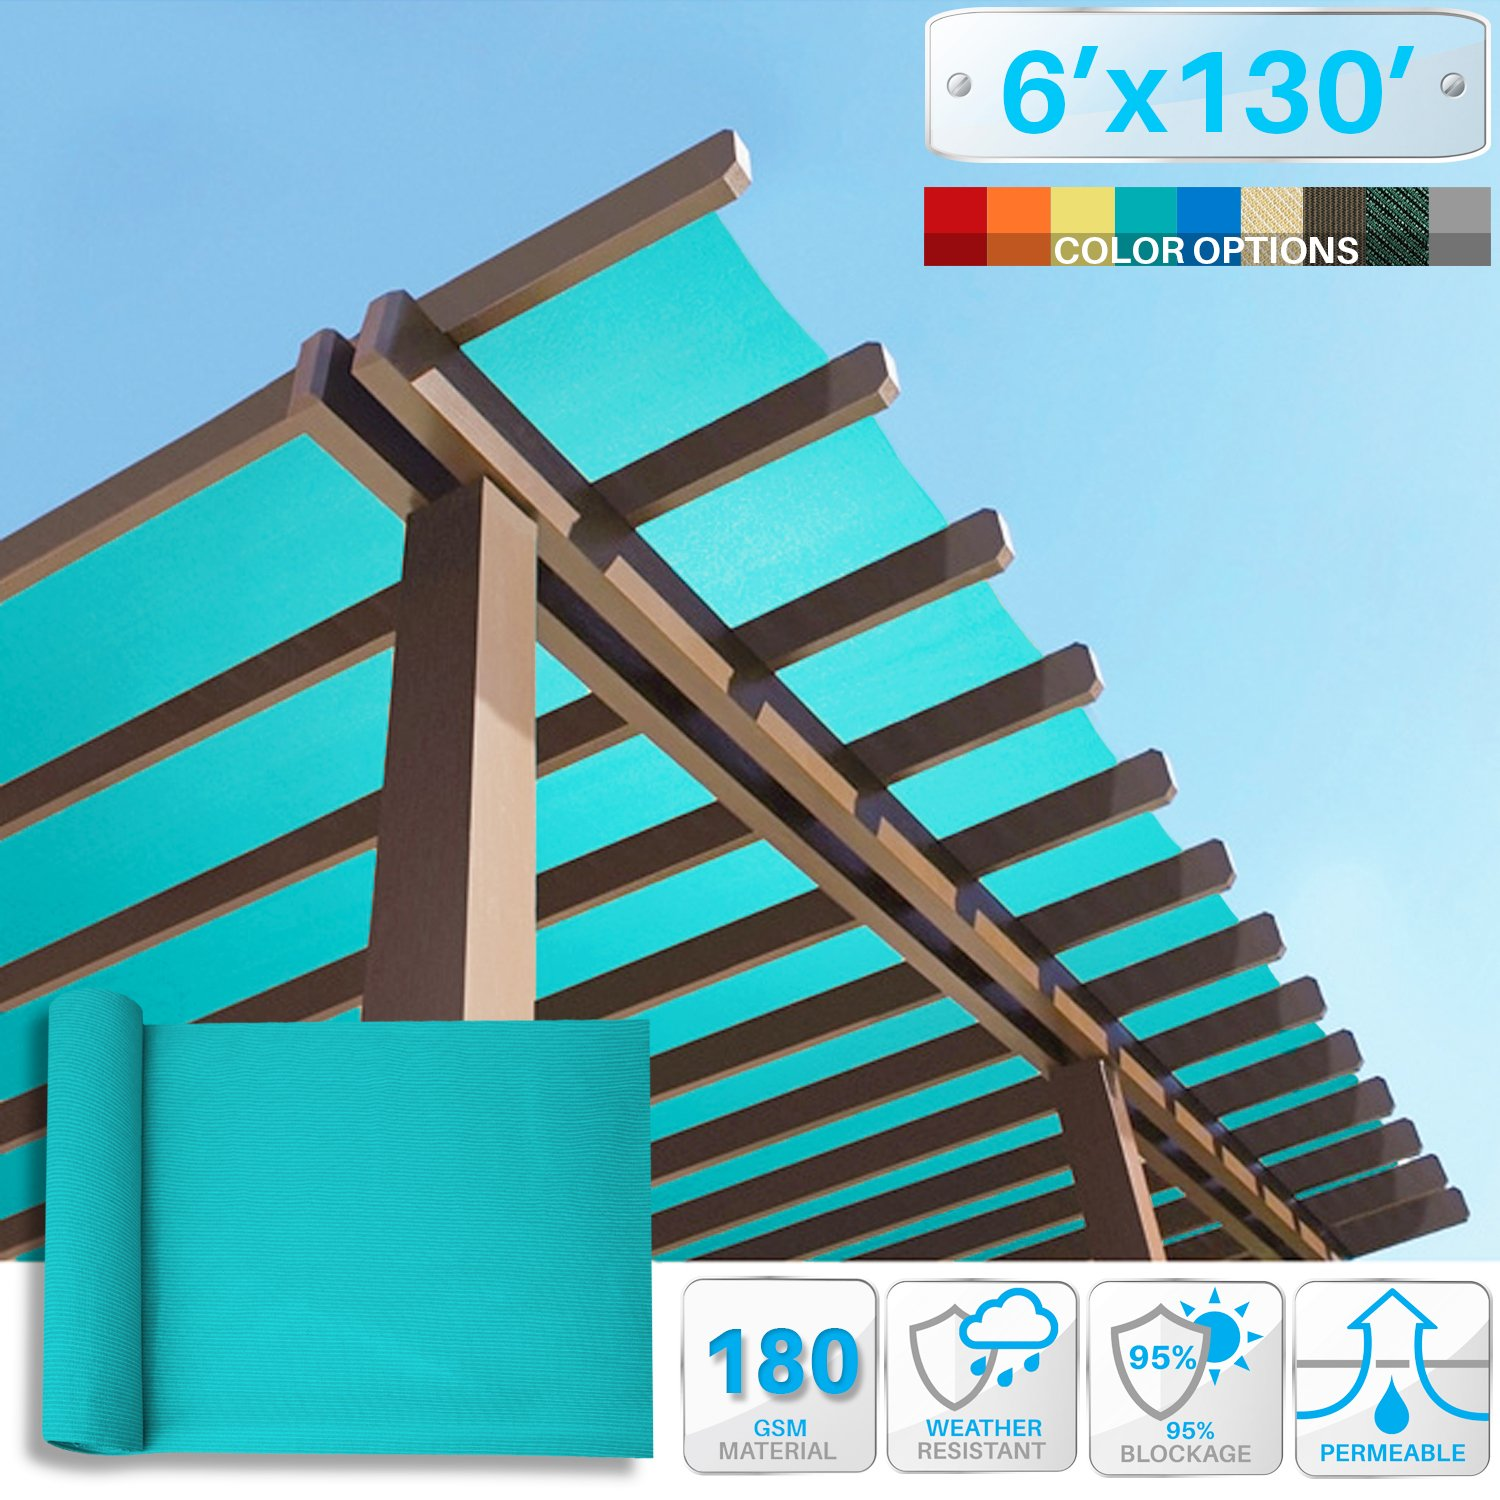 Patio Paradise 6' x 130' Sunblock Shade Cloth Roll,Turquoise Green Sun Shade Fabric 95% UV Resistant Mesh Netting Cover for Outdoor,Backyard,Plant,Greenhouse,Barn